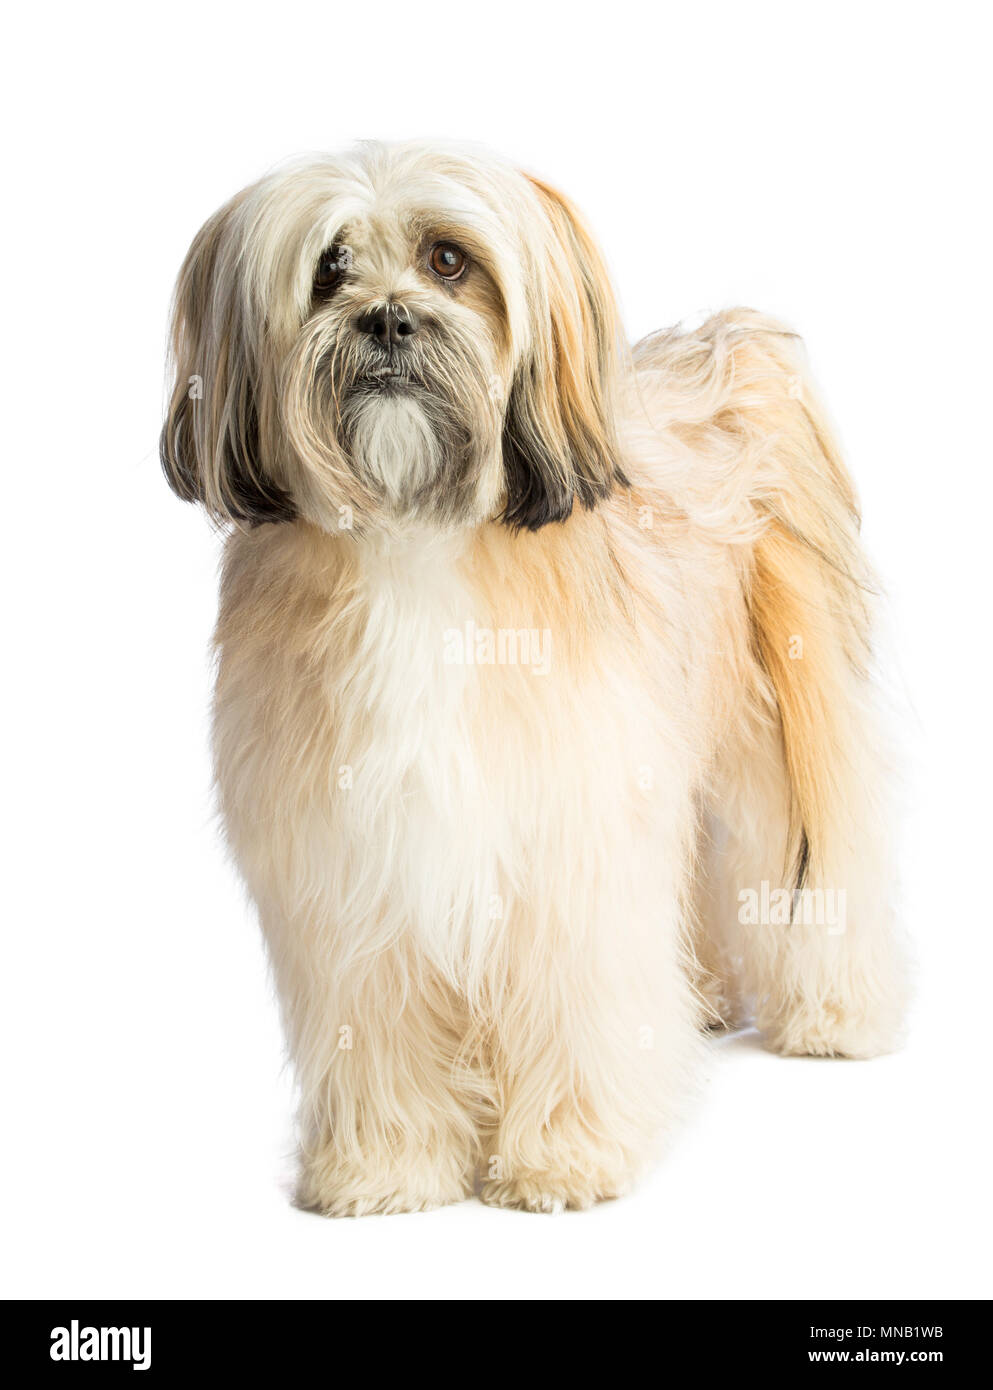 Lhassa Apso standing looking straight ahead on white bckground - Stock Image